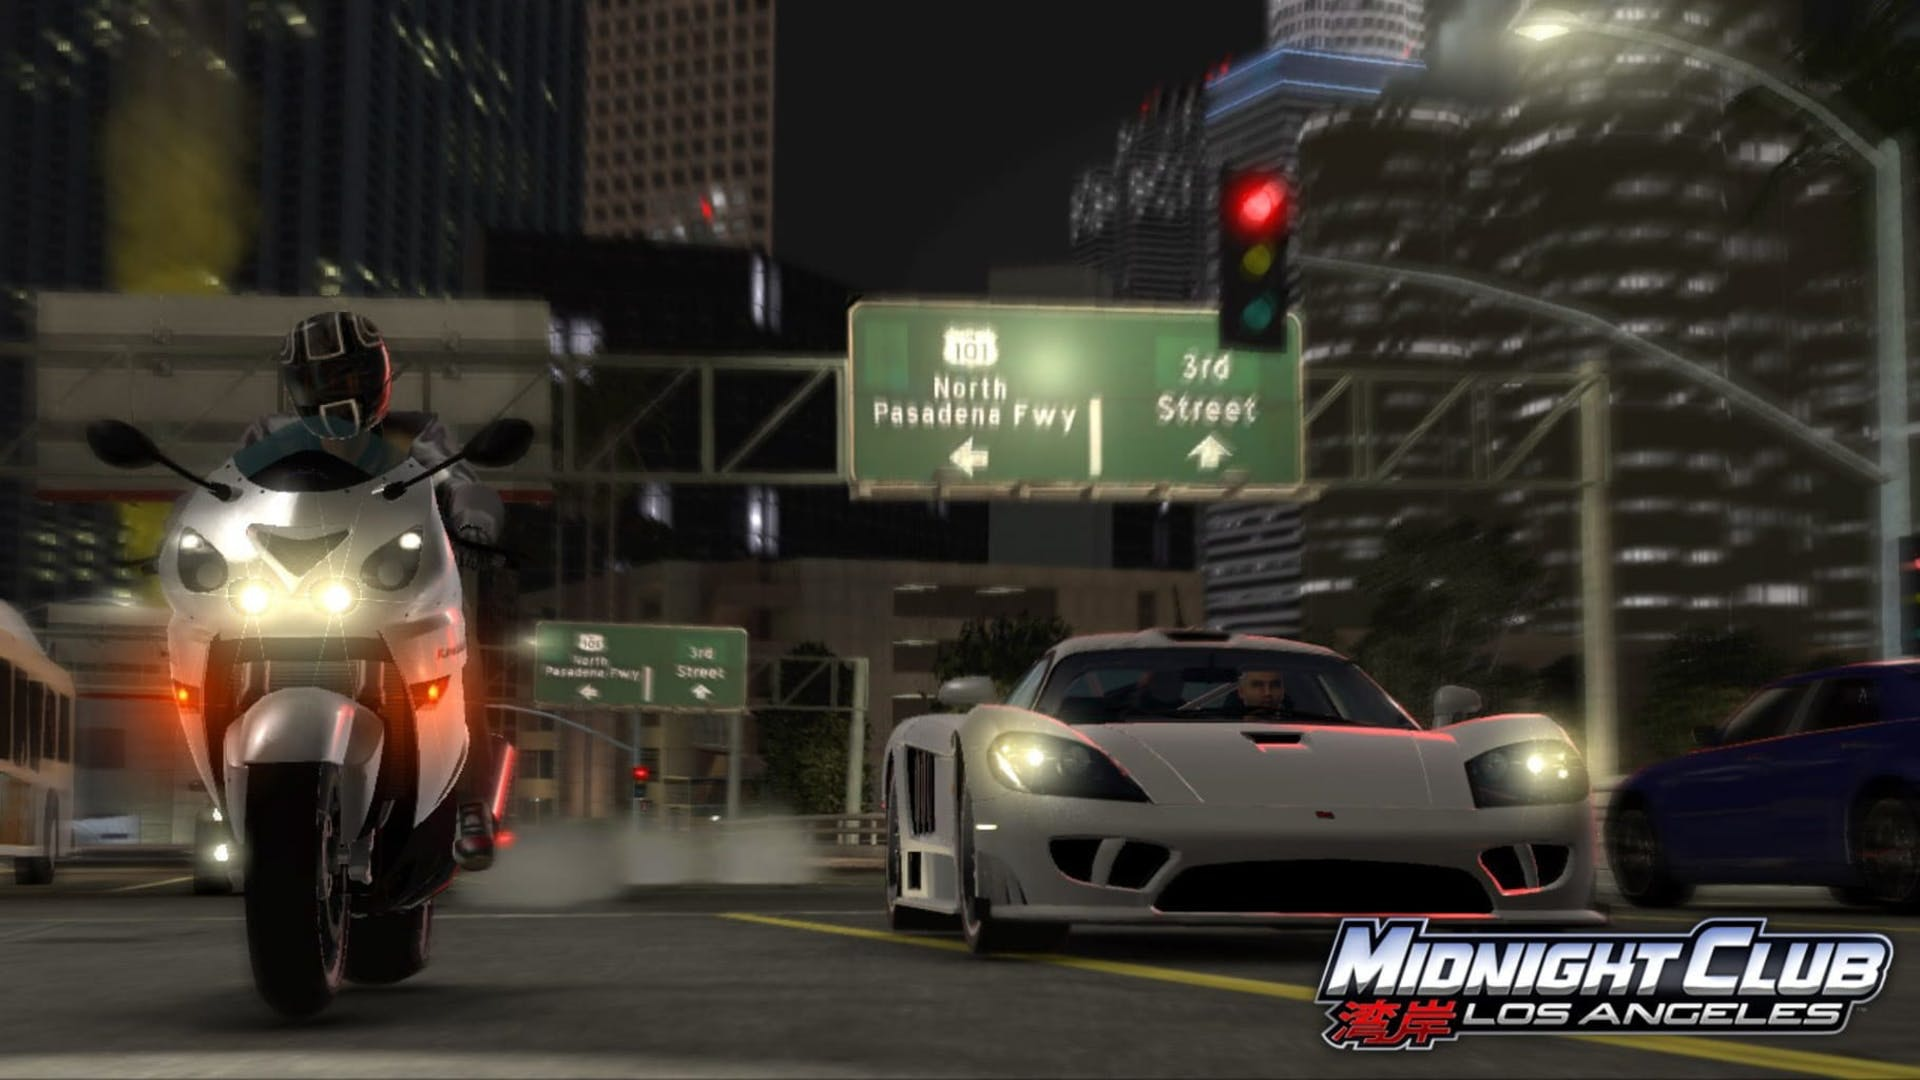 Midnight Club: Los Angeles Soundtrack